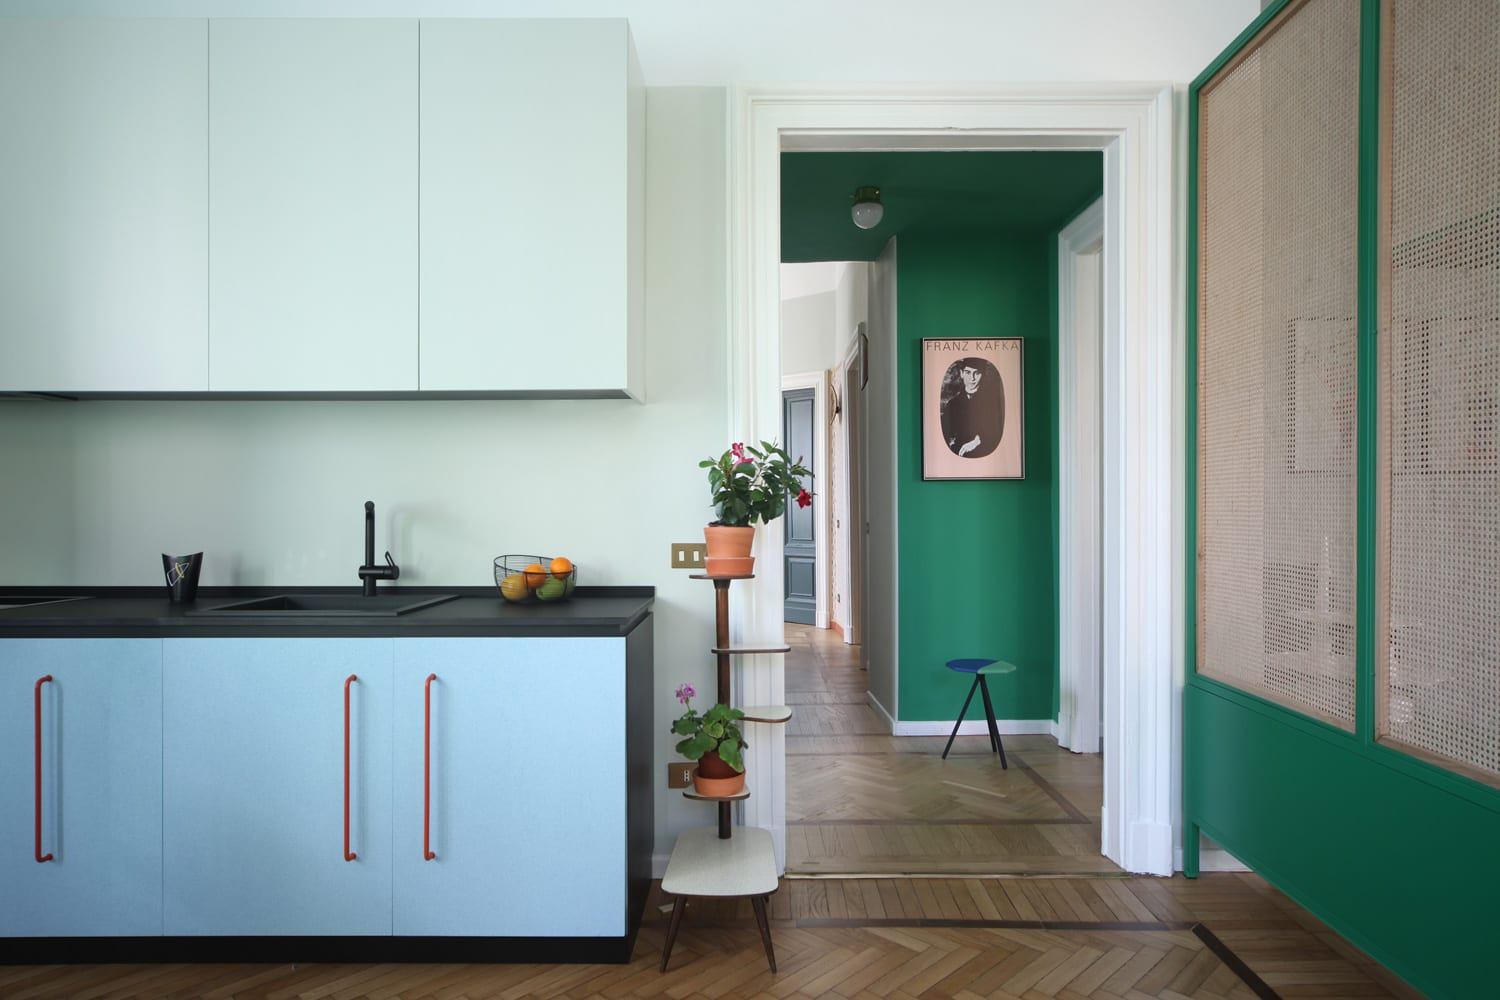 Apartment Renovation in Milan by Marcante-Testa | Yellowtrace